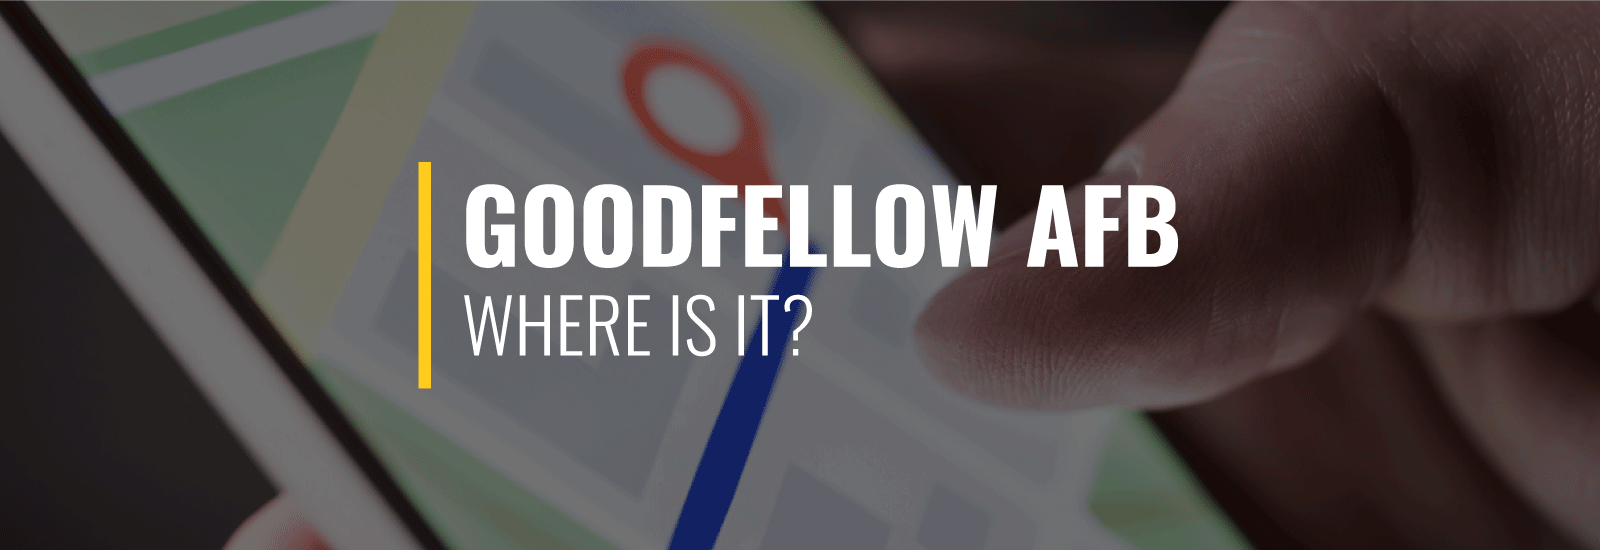 Where Is Goodfellow Air Force Base?